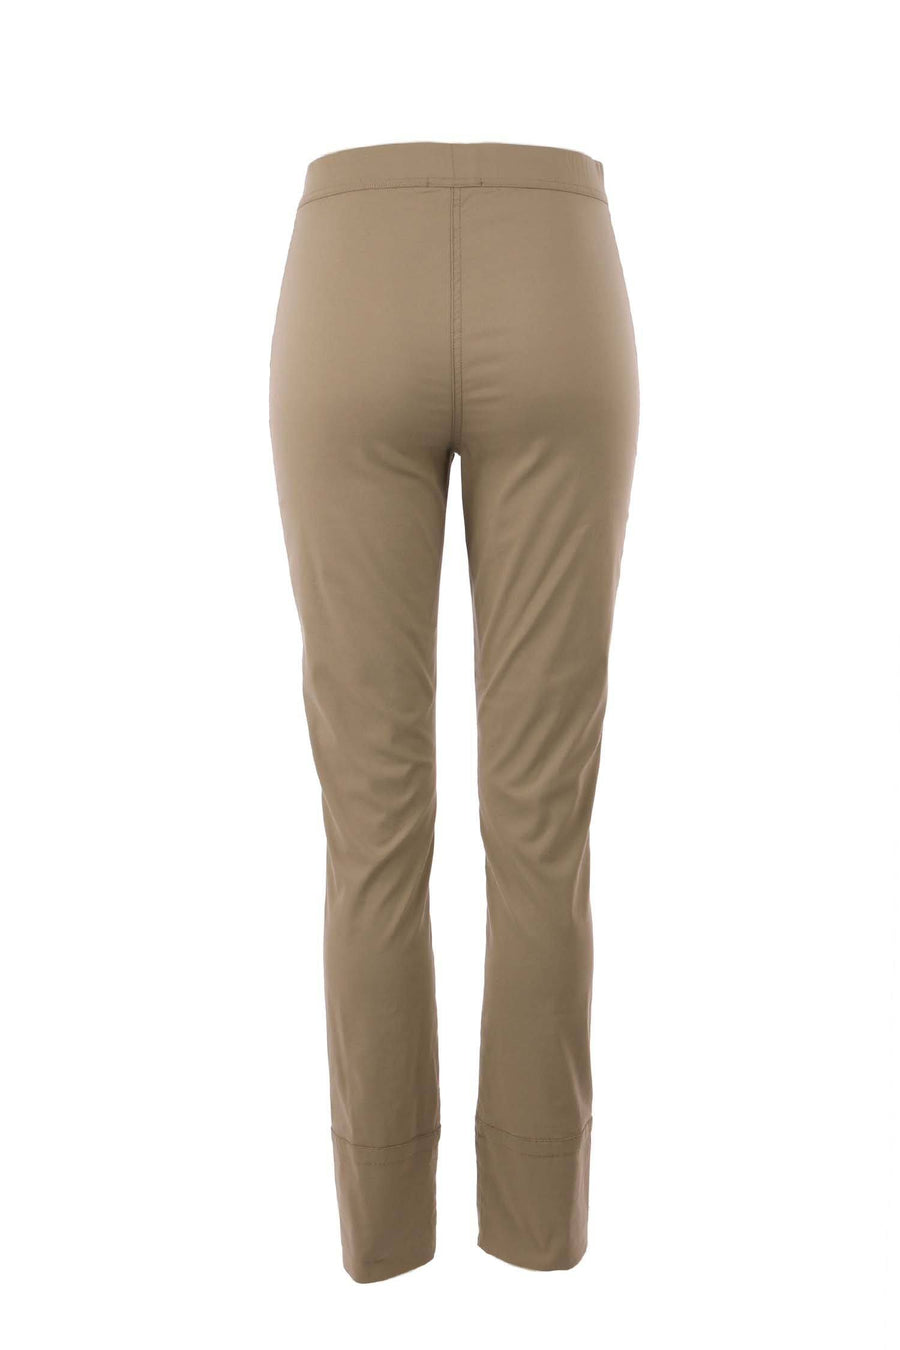 Stove Pipe Pant in Spinifex